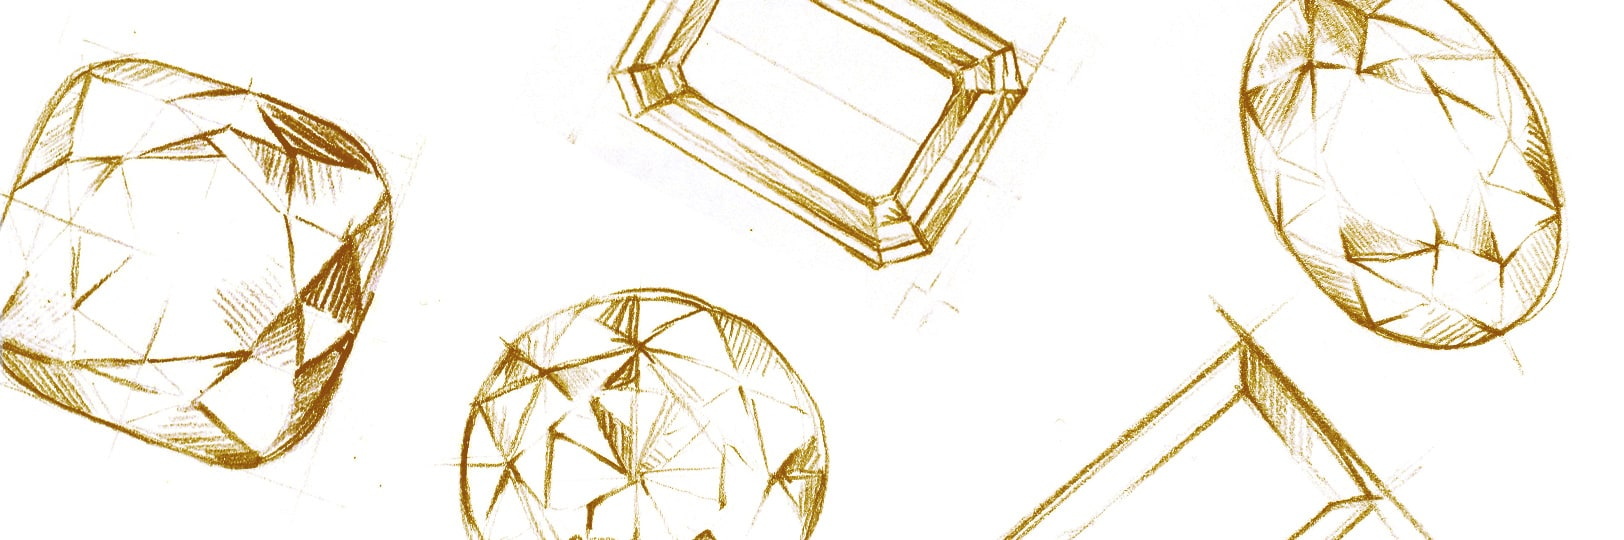 Sketch of different diamond shapes